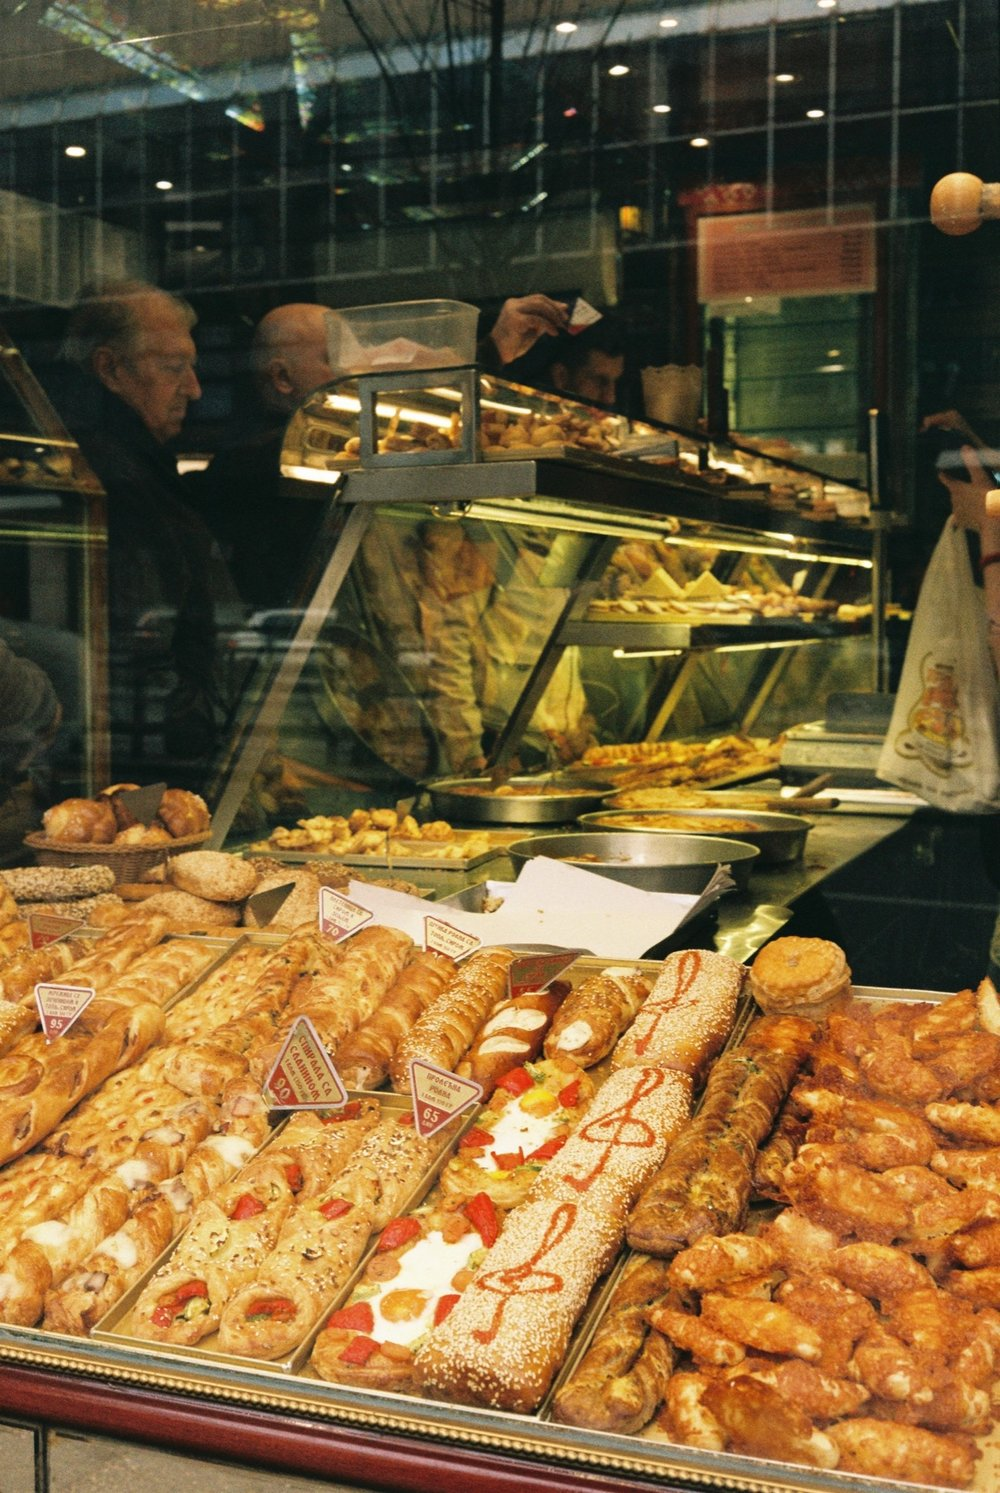 Bakery window showing goods from $0.65 to $0.95, Belgrade - Serbia